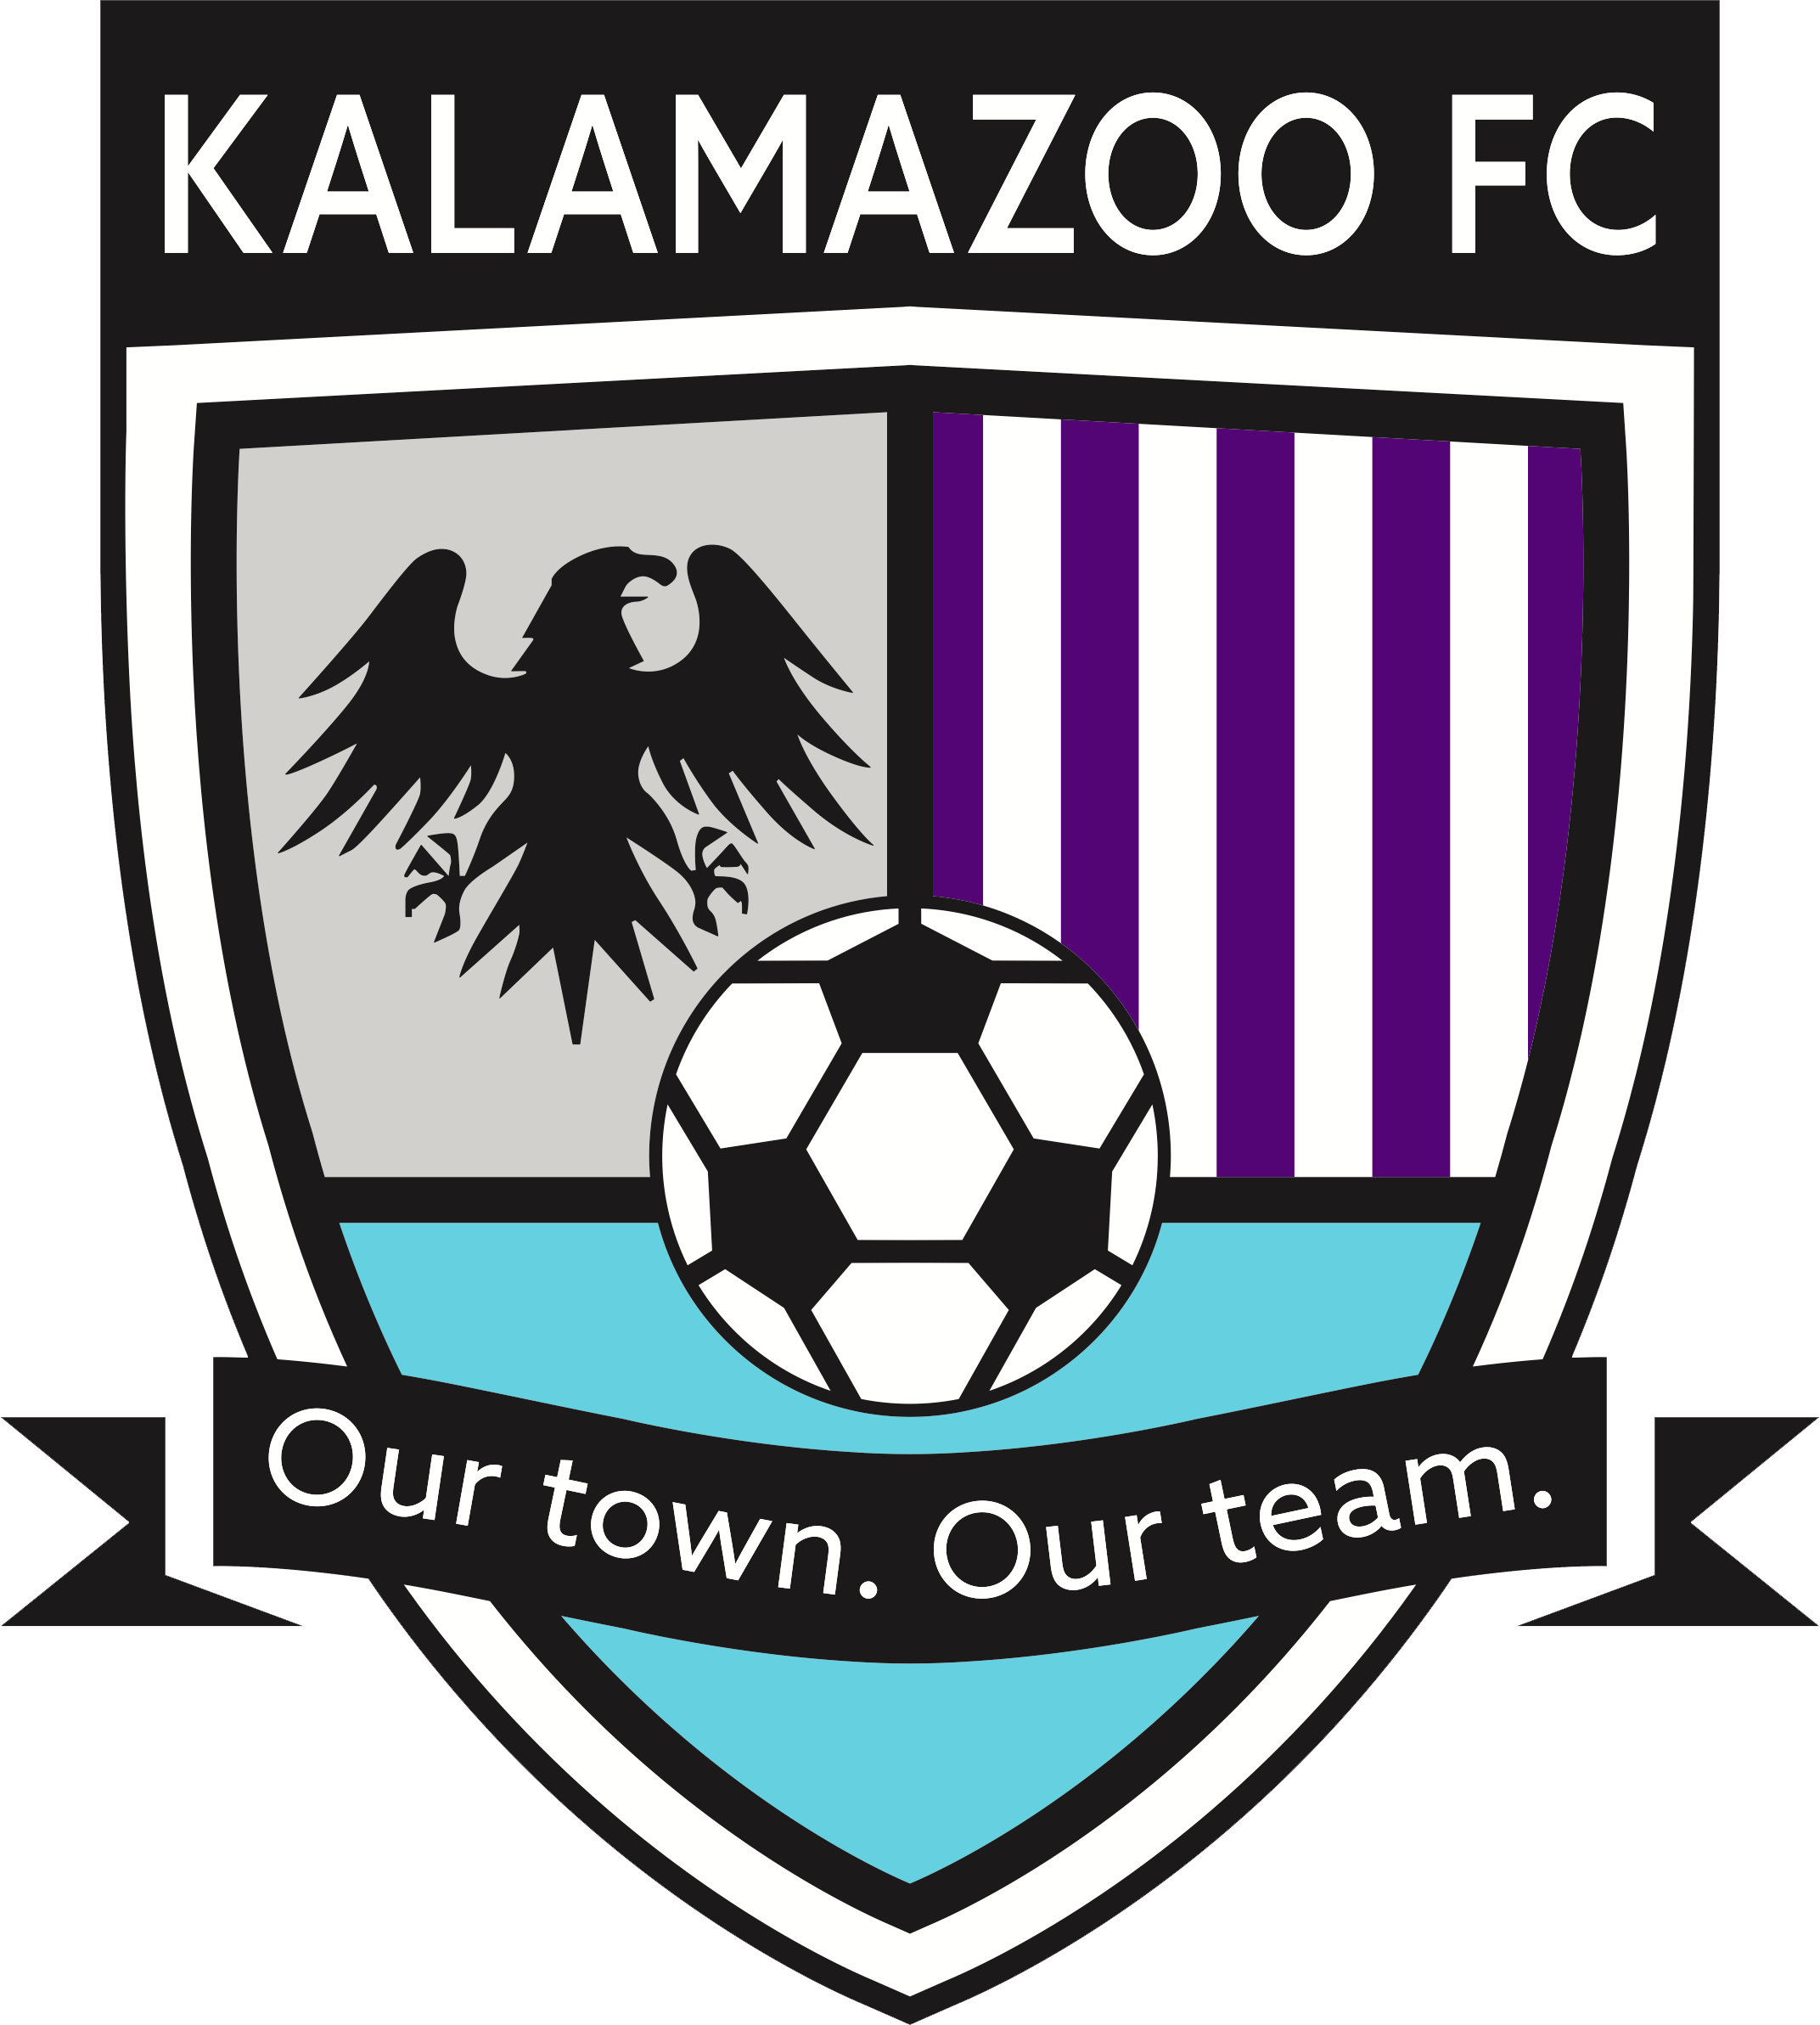 Kalamazoo Football Club